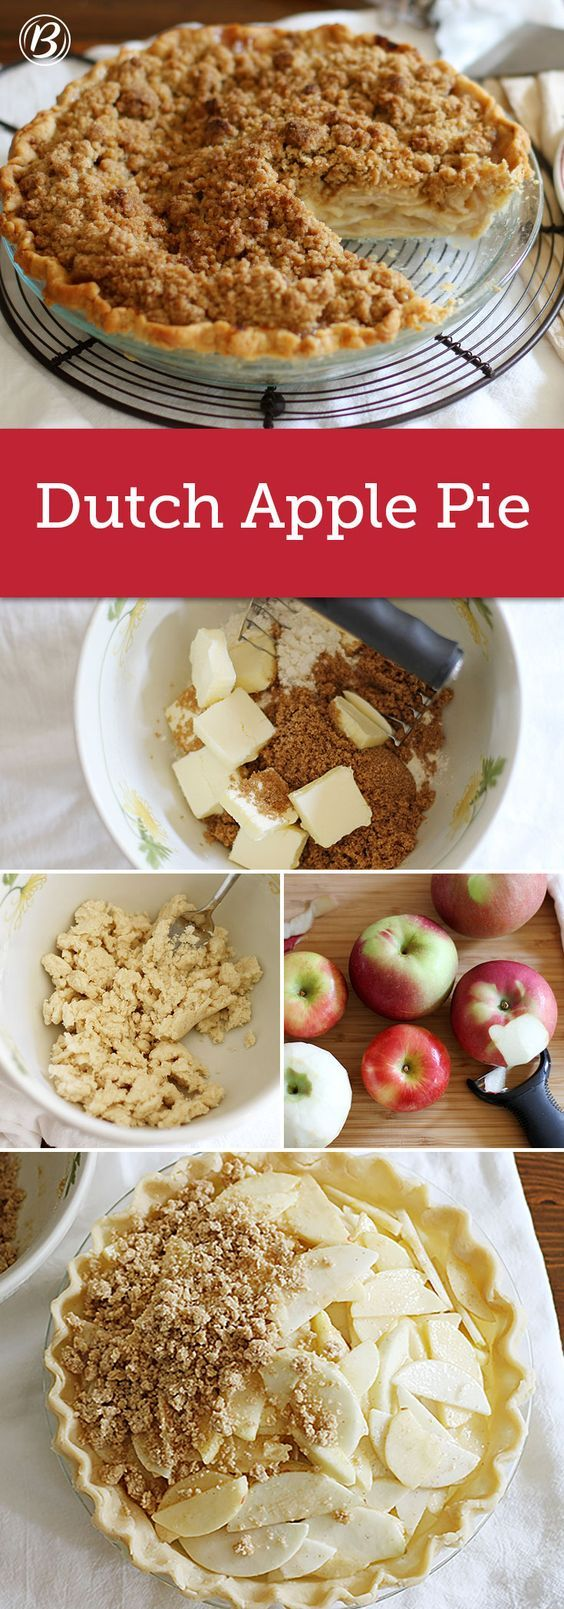 Celebrate apple season and bake up this classic crumble-topped apple pie today…